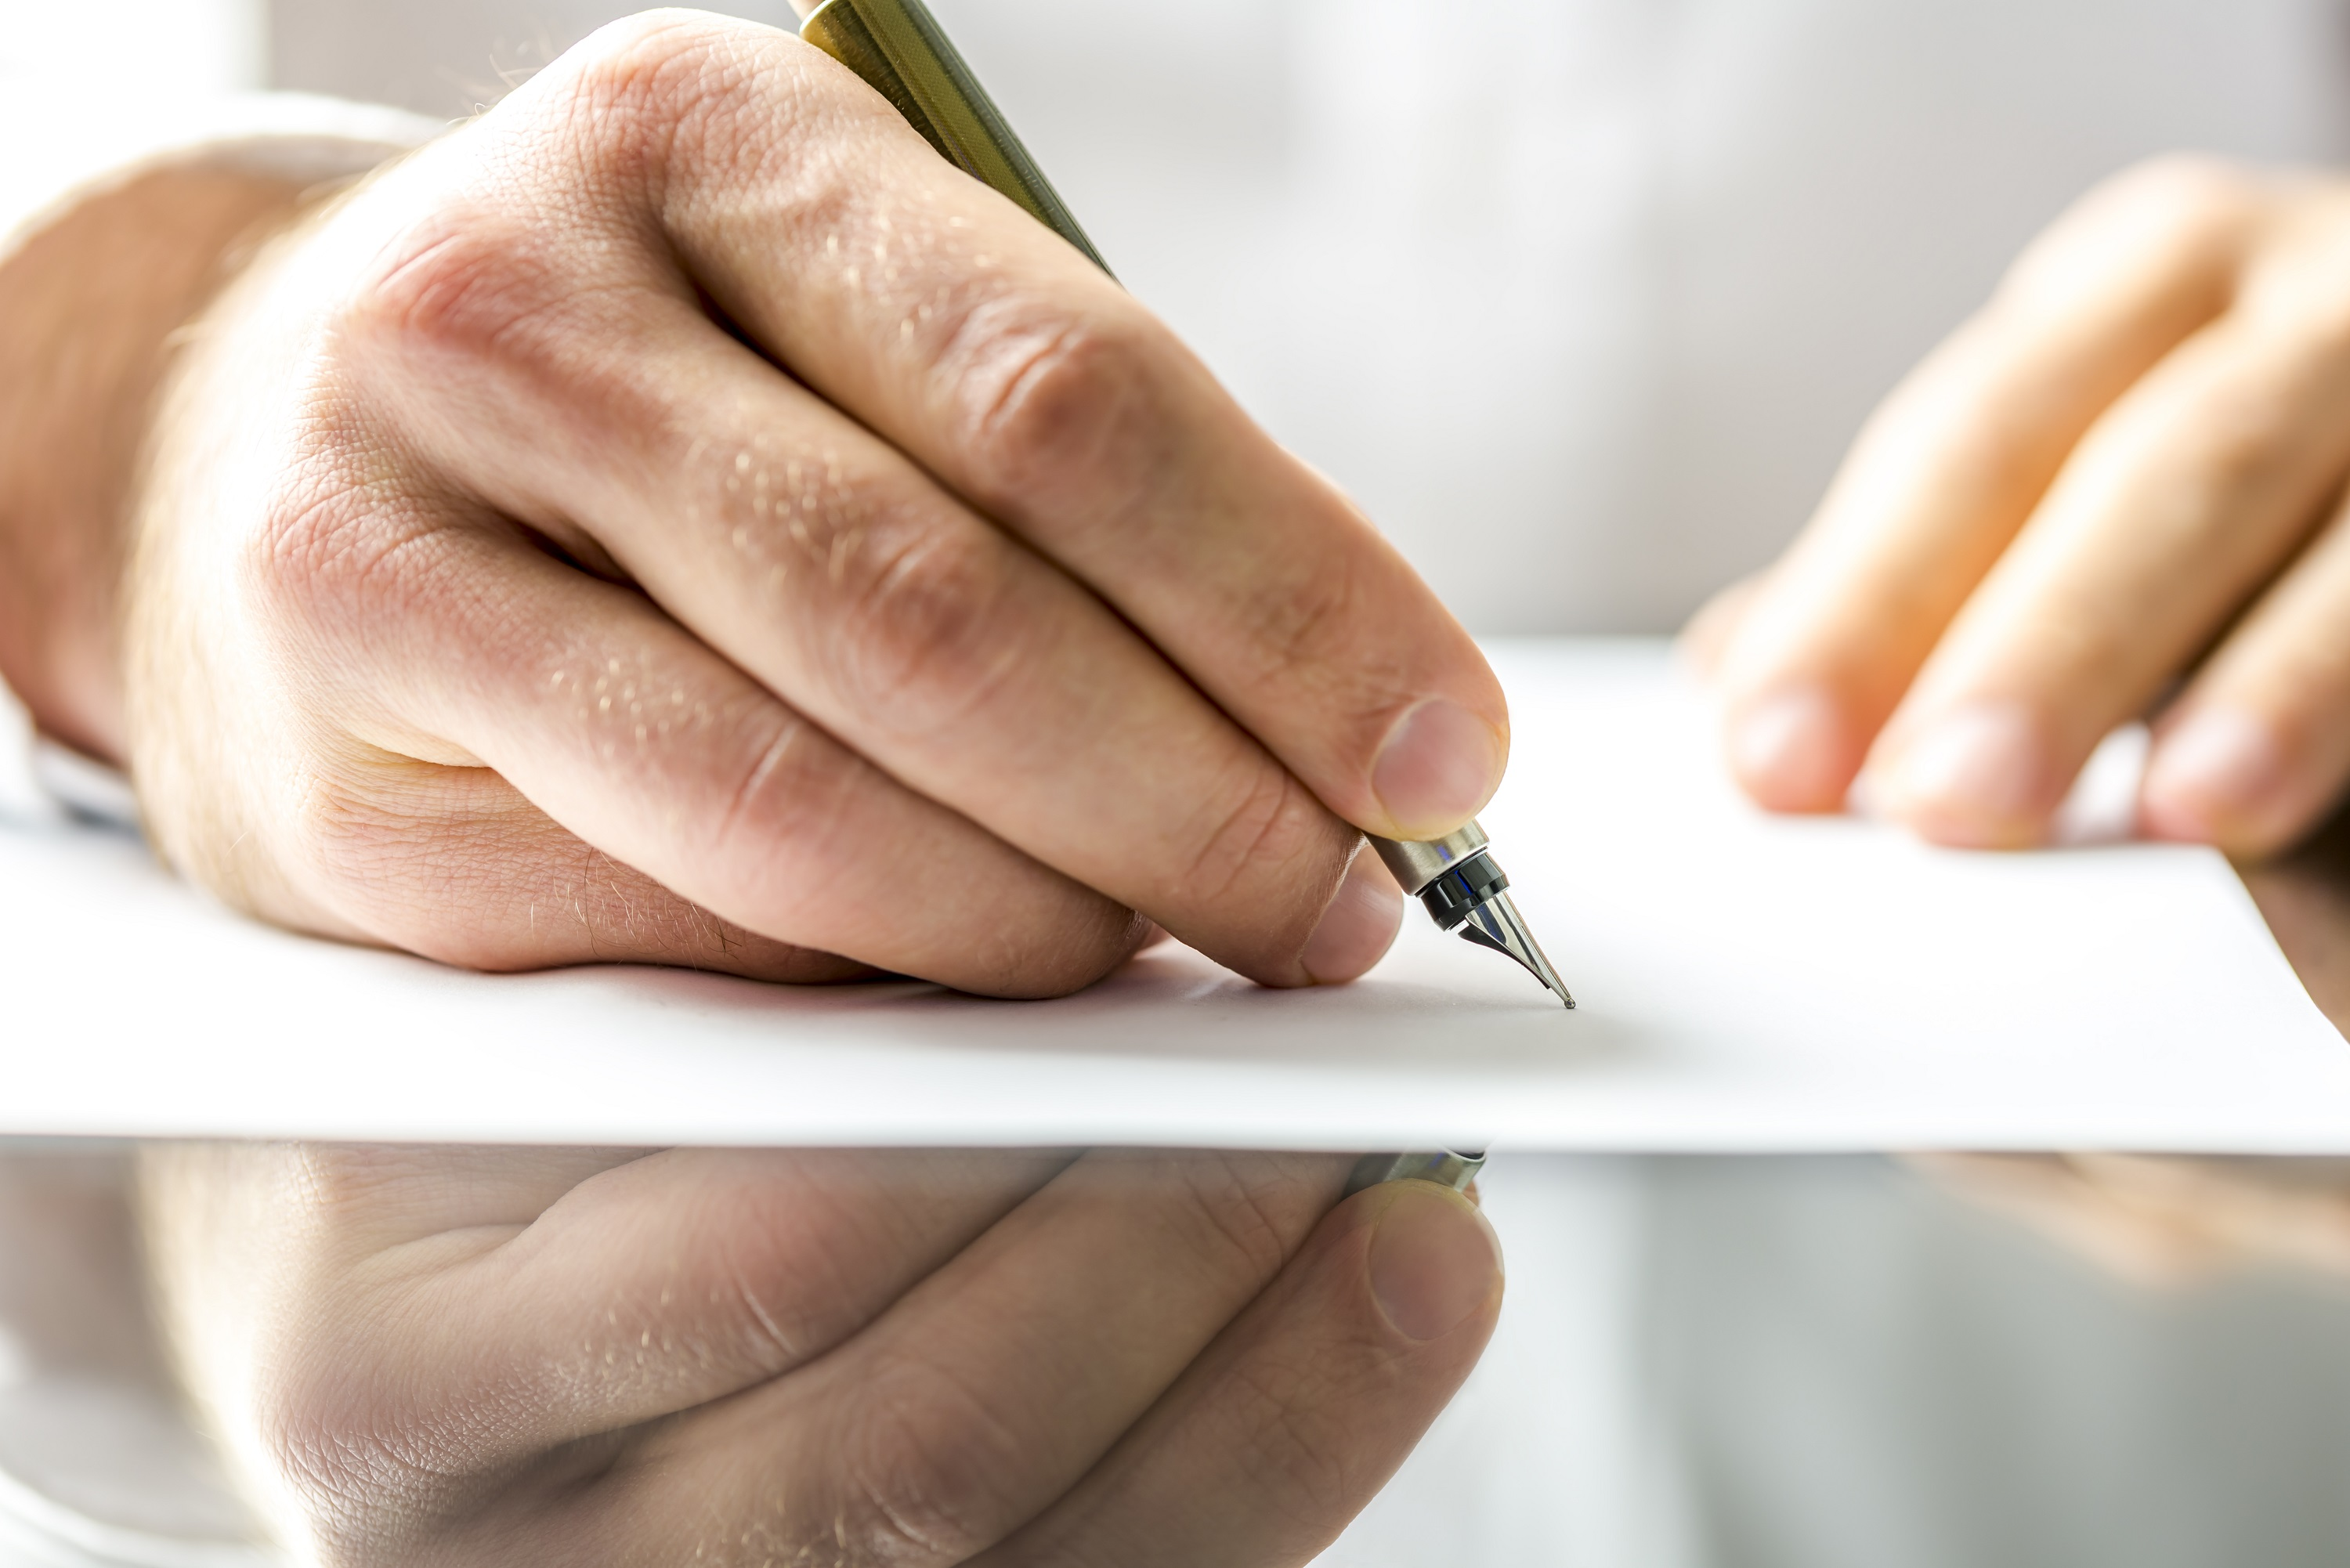 A man's hand writing on a piece of paper